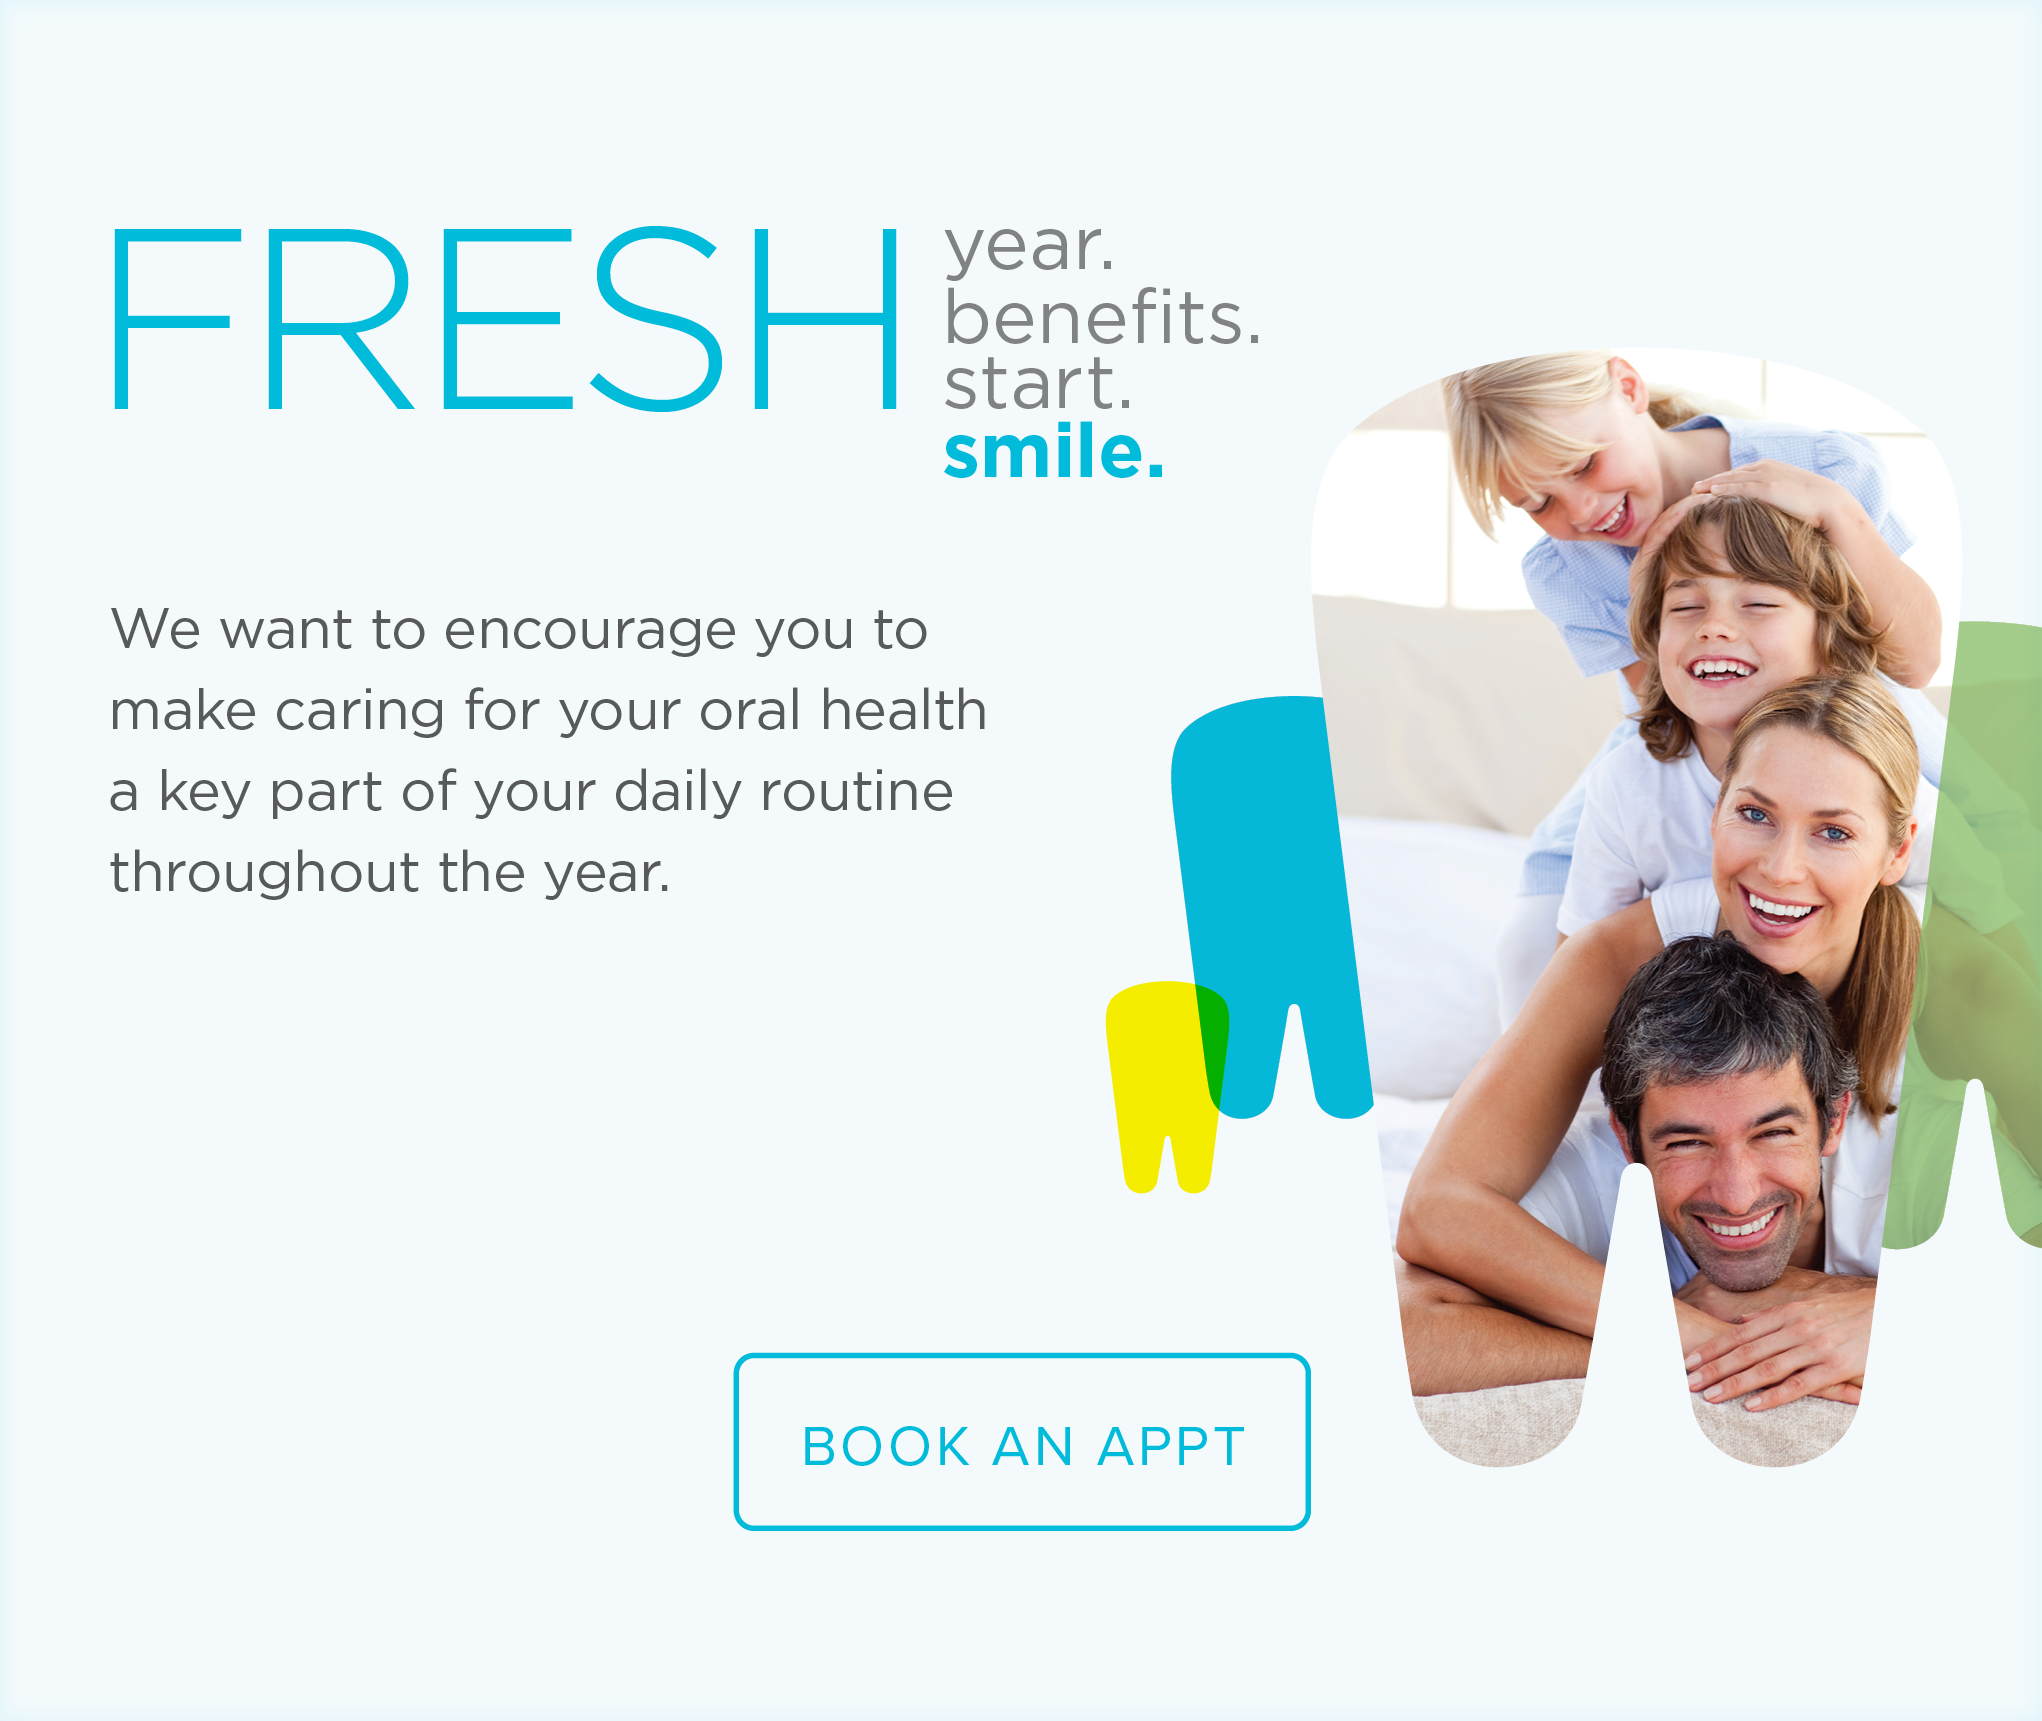 Promenade Dentists - Make the Most of Your Benefits